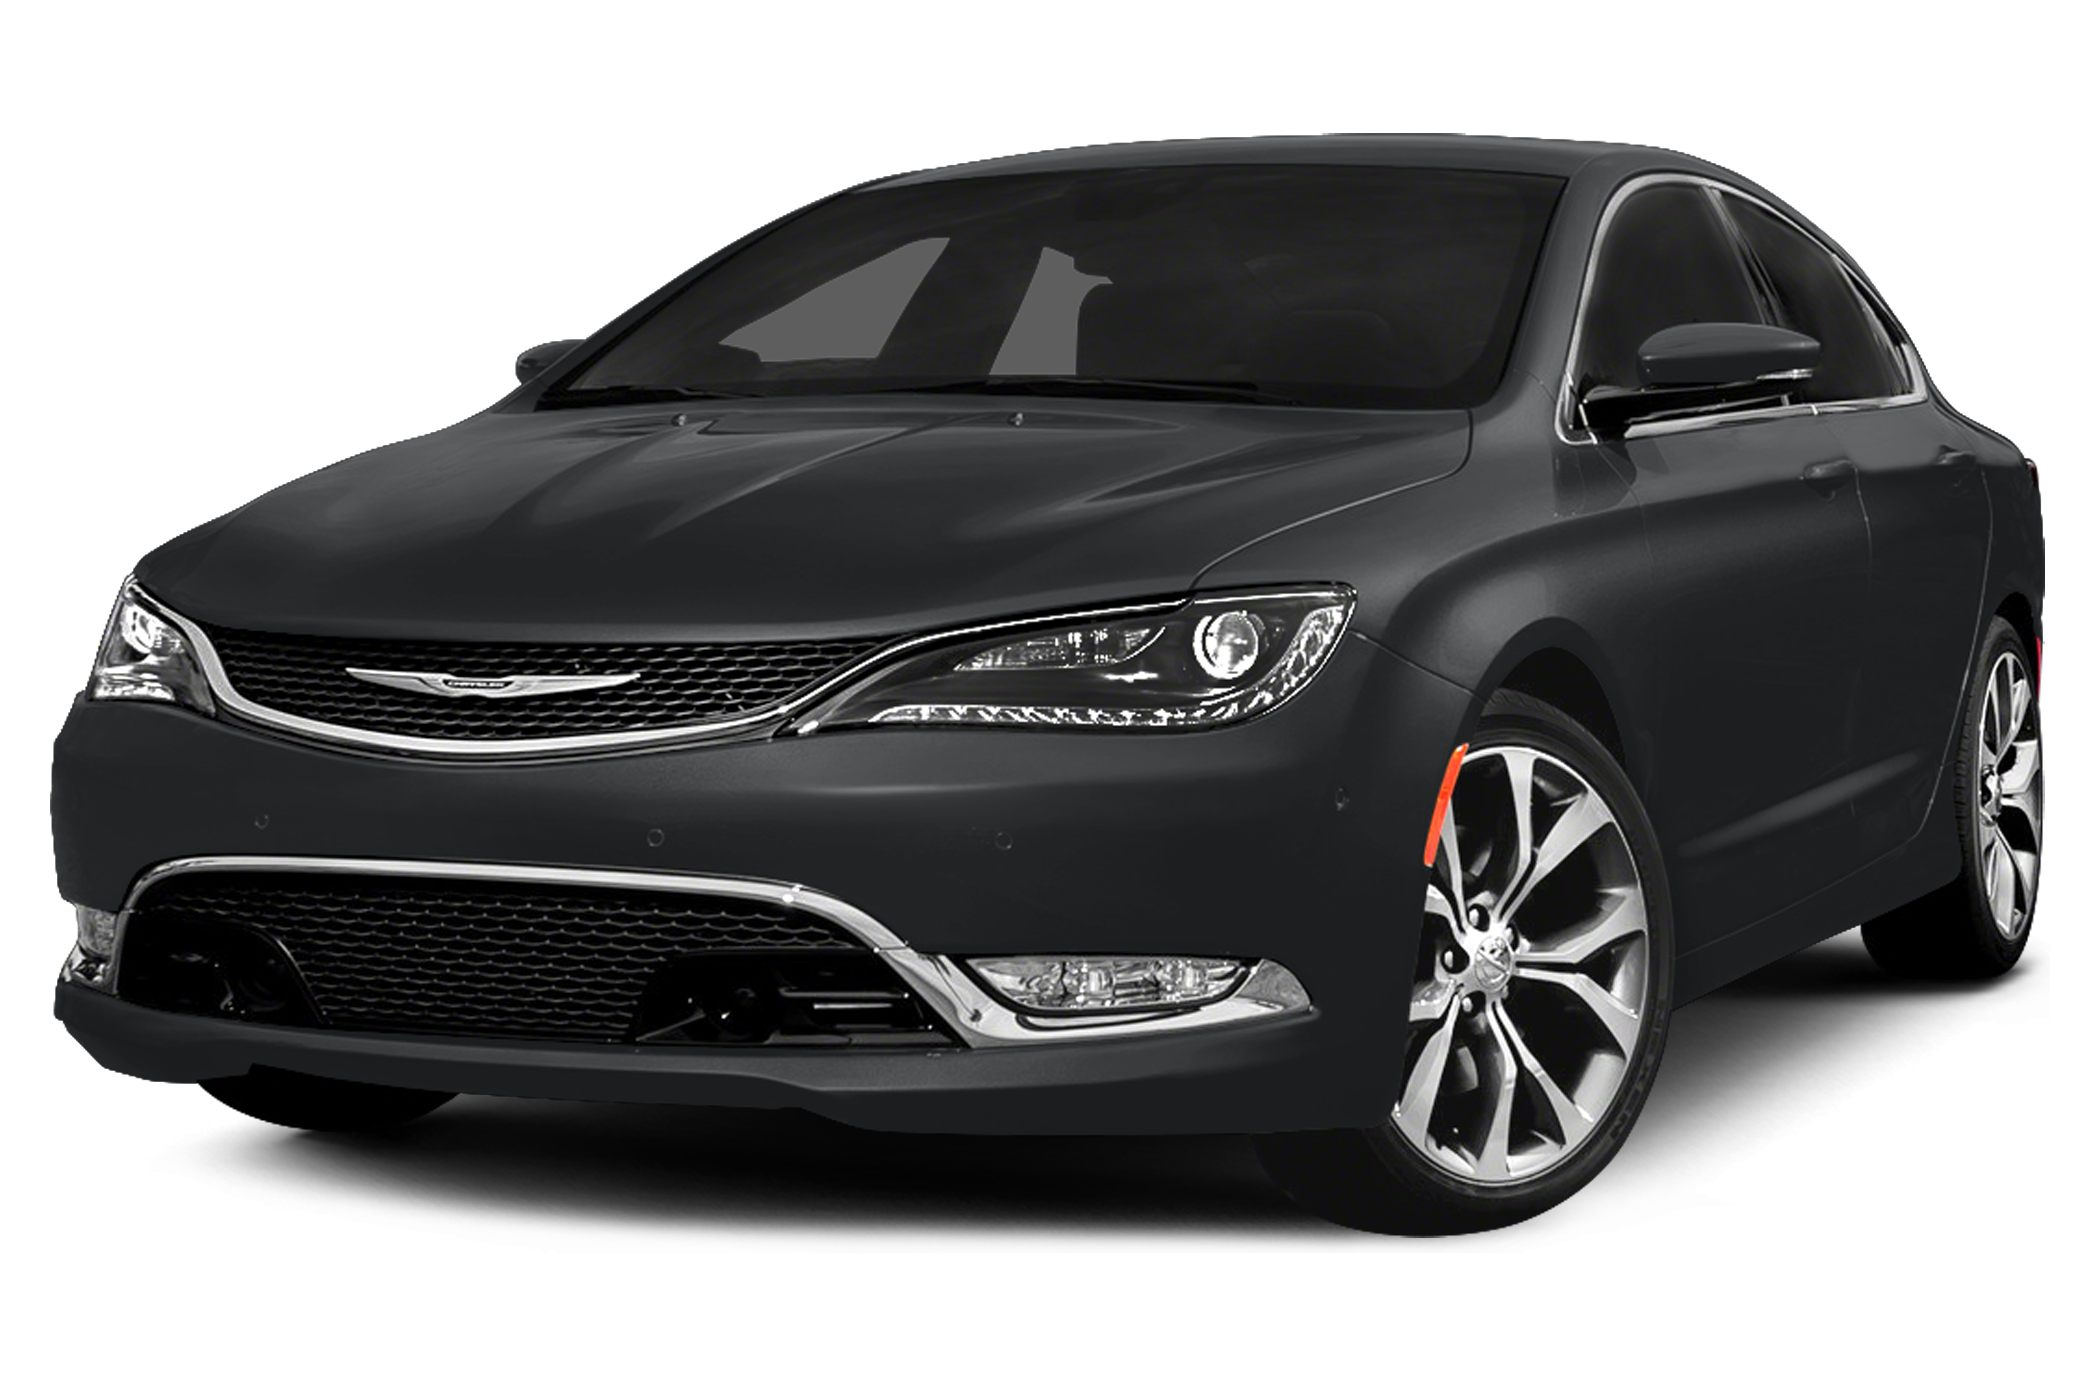 2015 Chrysler 200 Limited Sedan for sale in La Grange for $21,057 with 0 miles.